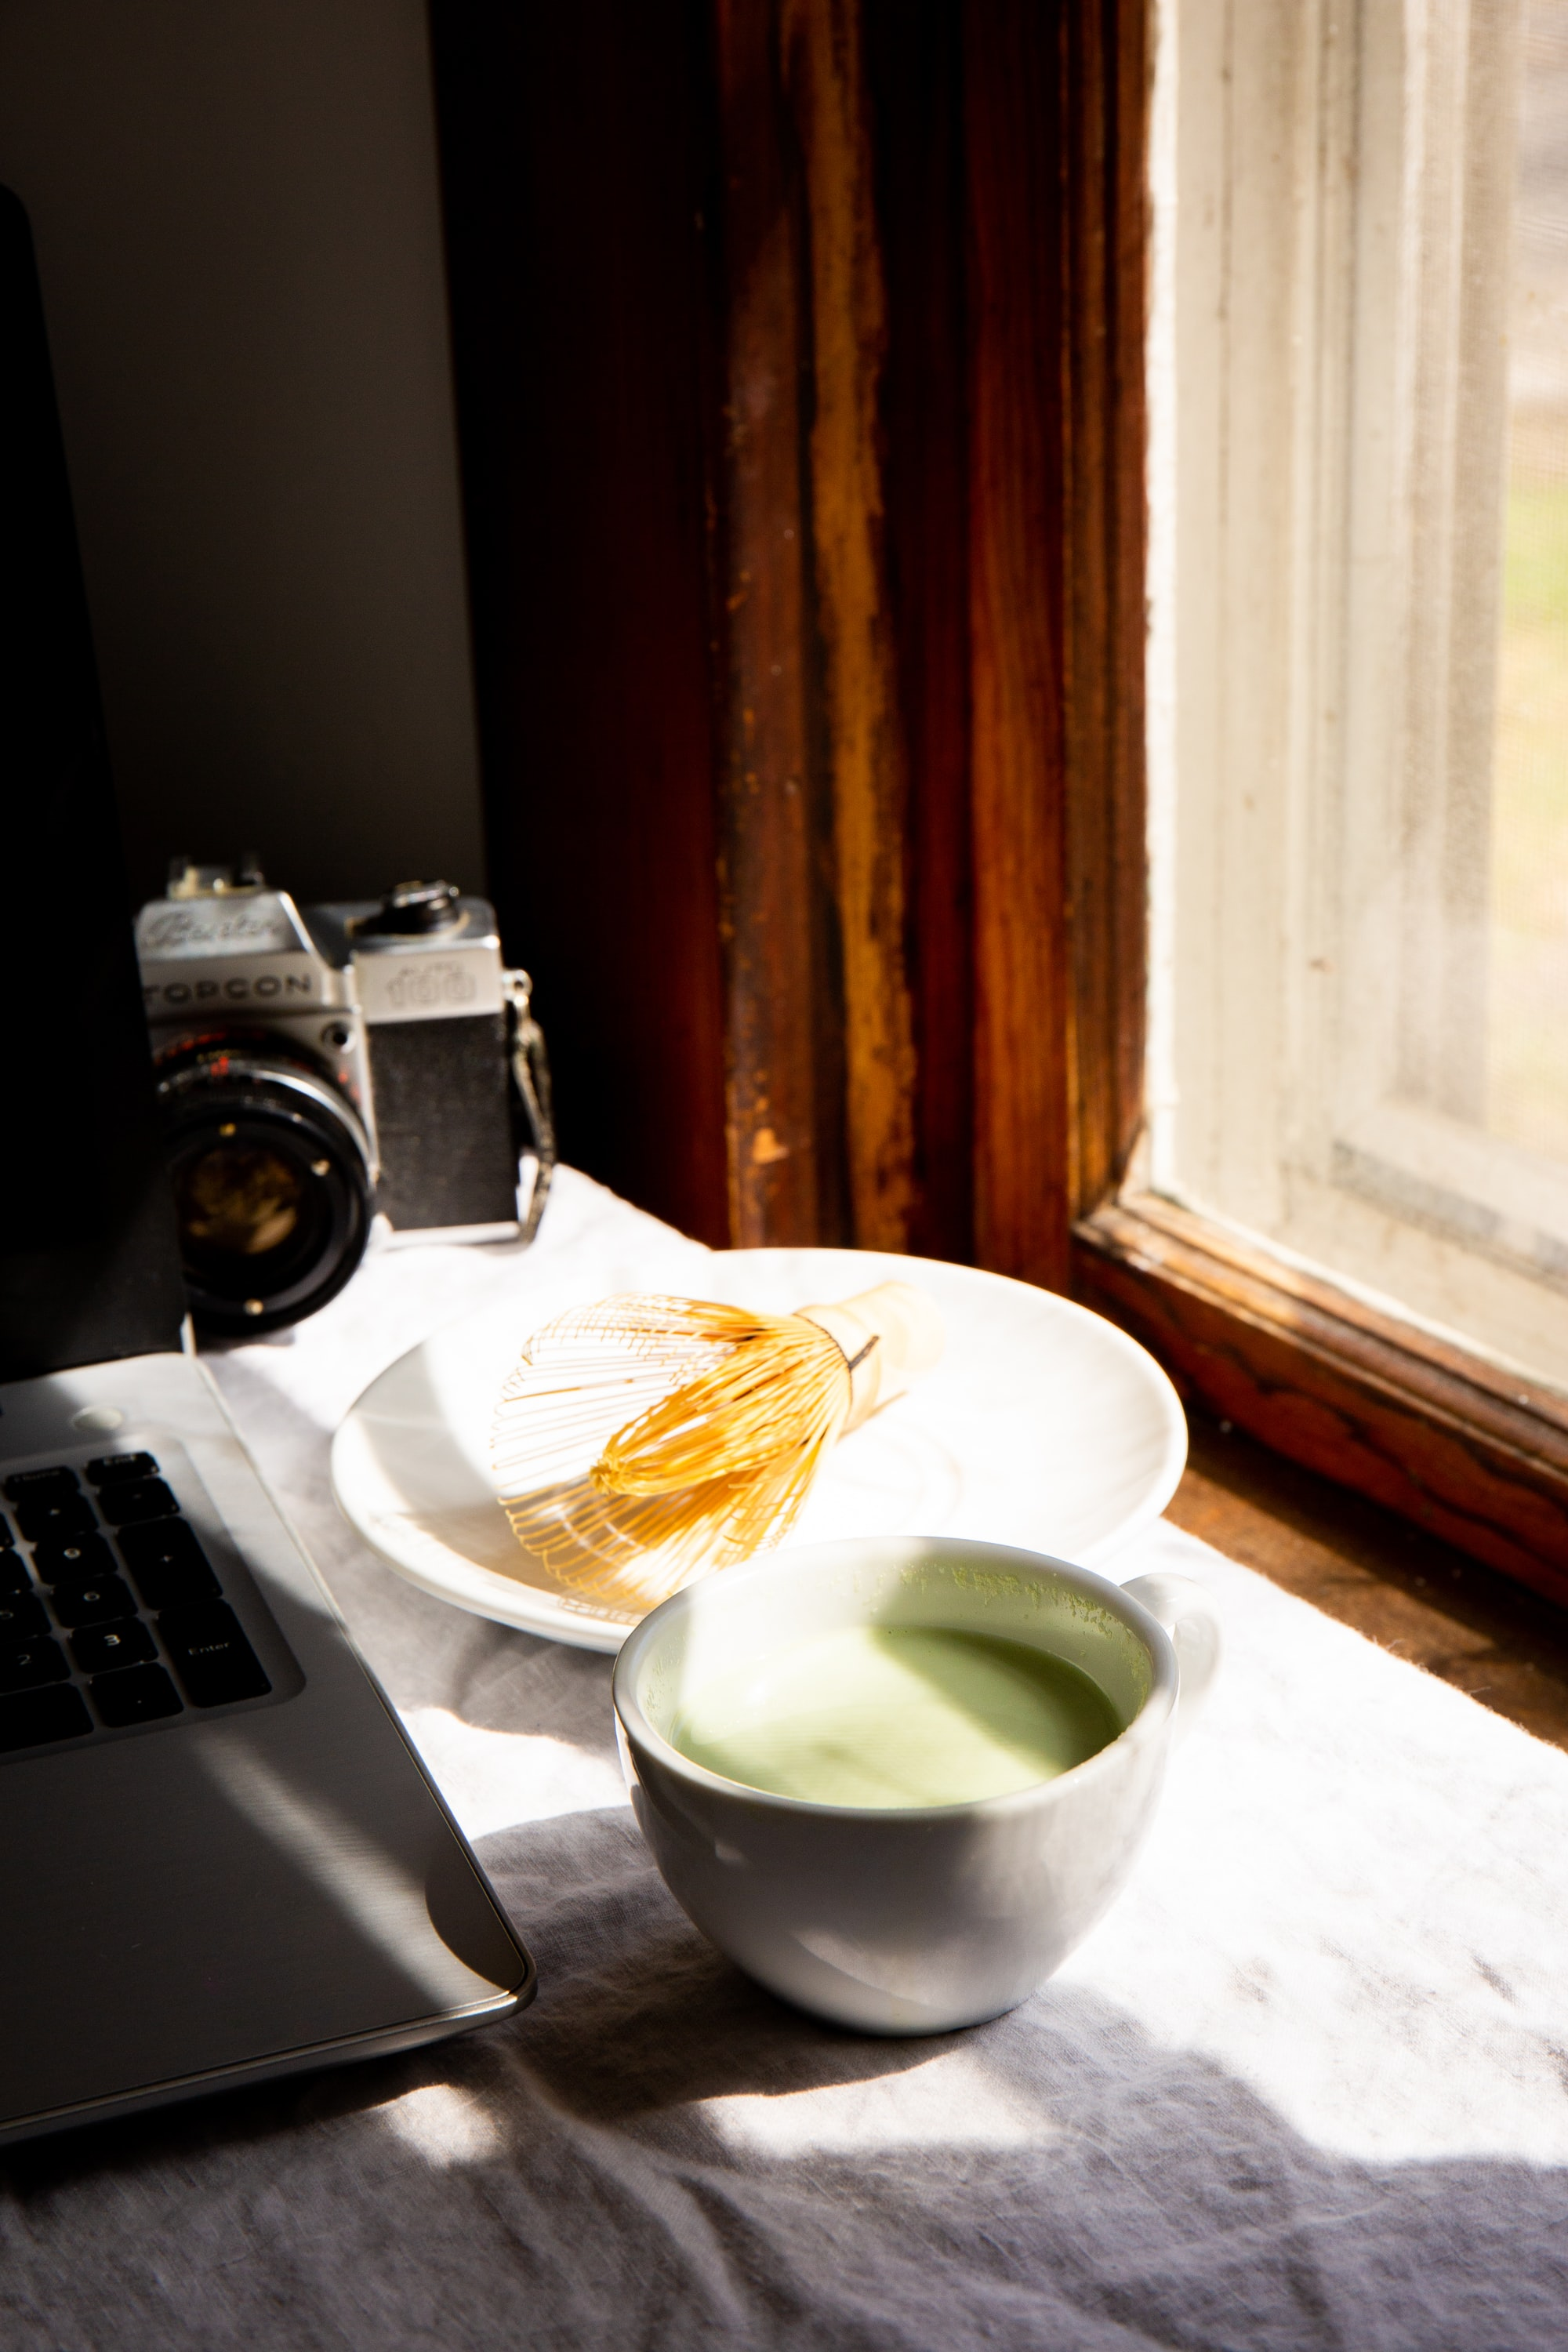 A beautiful morning of editing photos is only complete by a sweet green matcha tea latte.